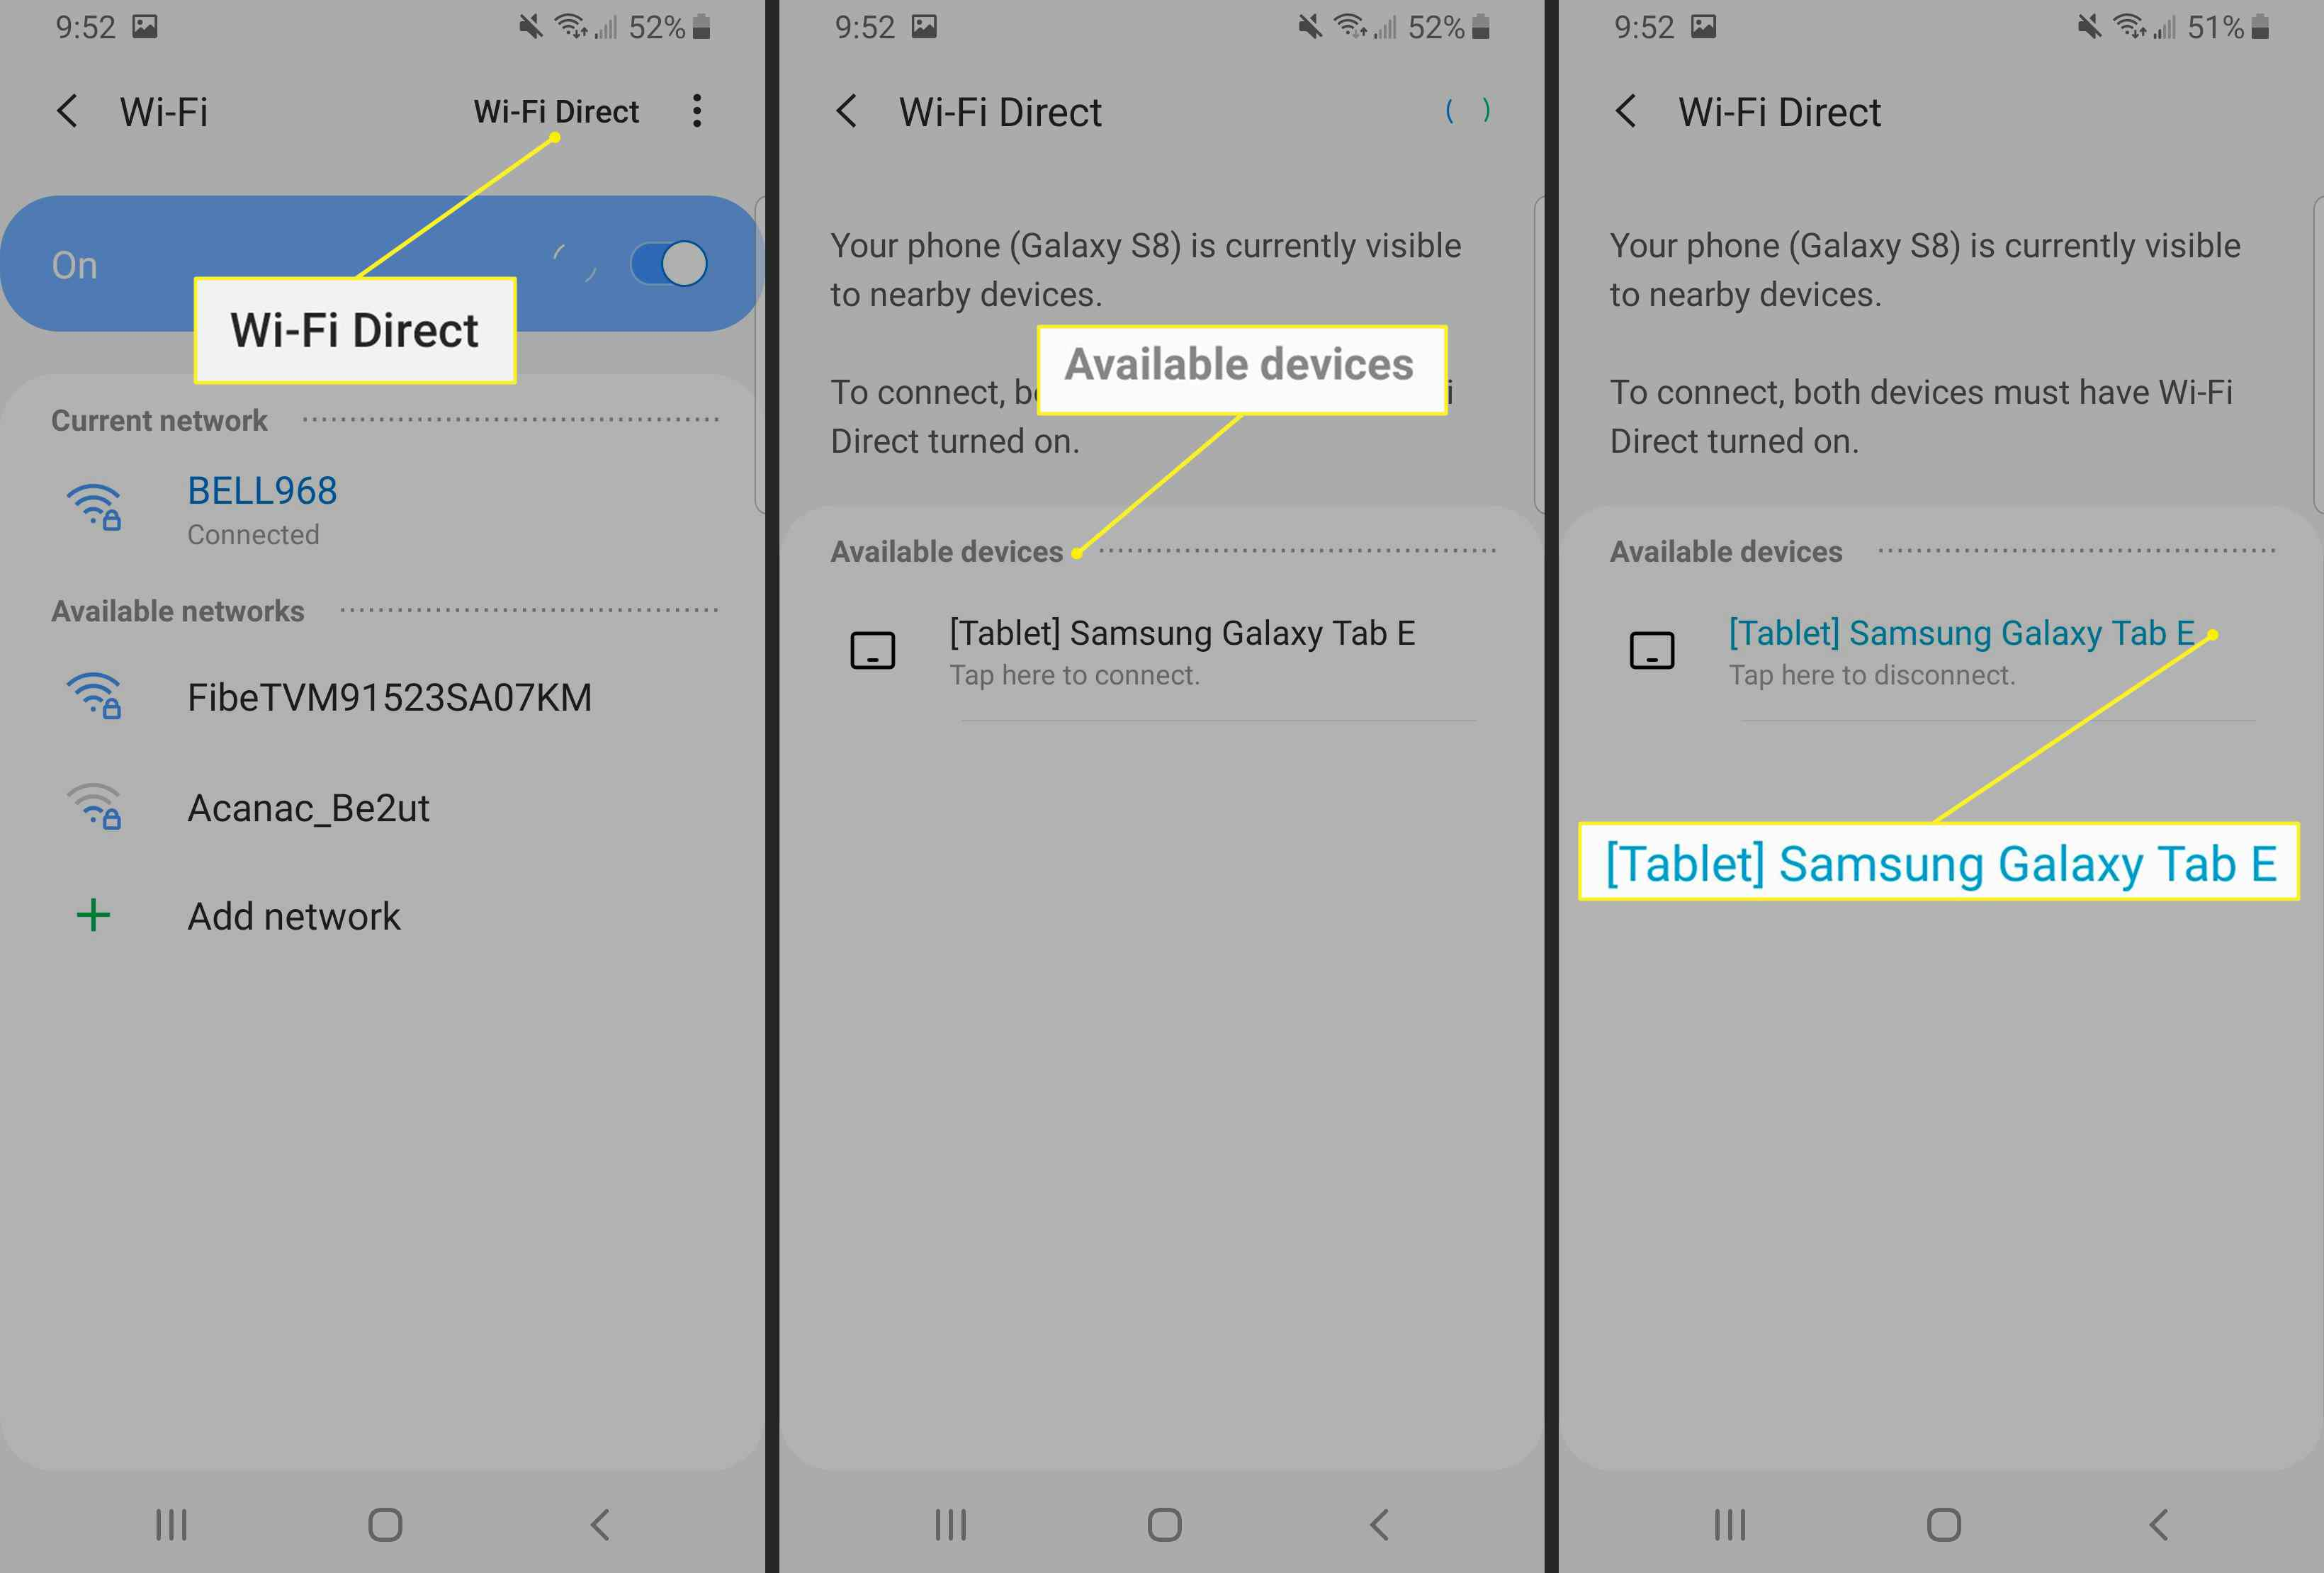 Wi-Fi Direct connecting to a Samsung Tablet